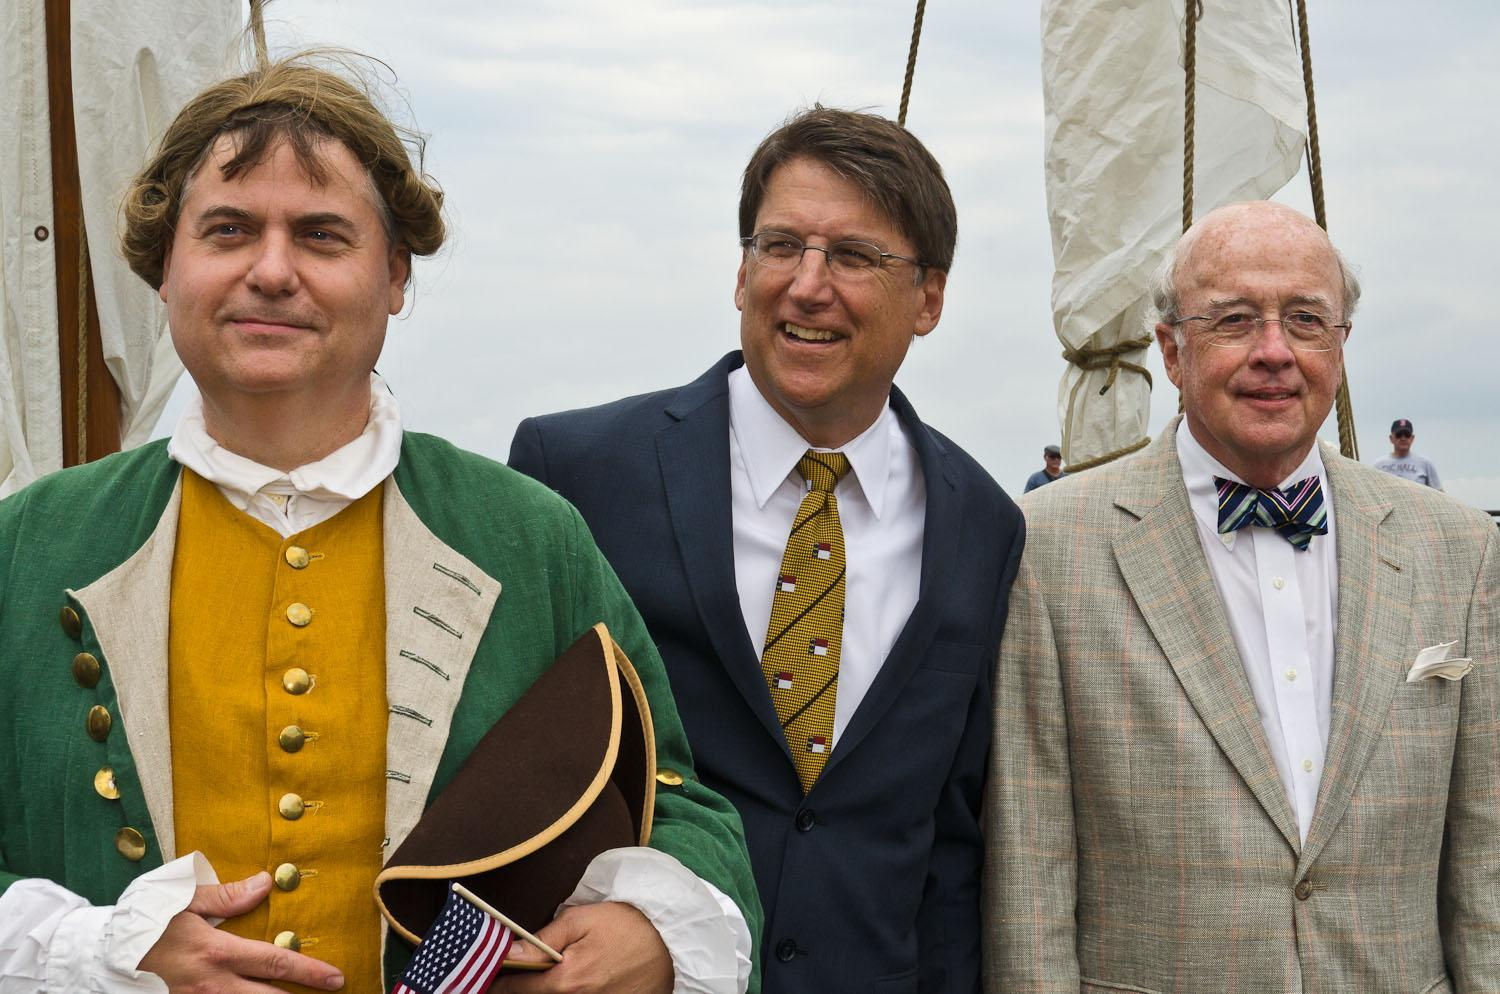 Gov Eden, Gov McCrory and Edenton's Mayor Roland Vaughan